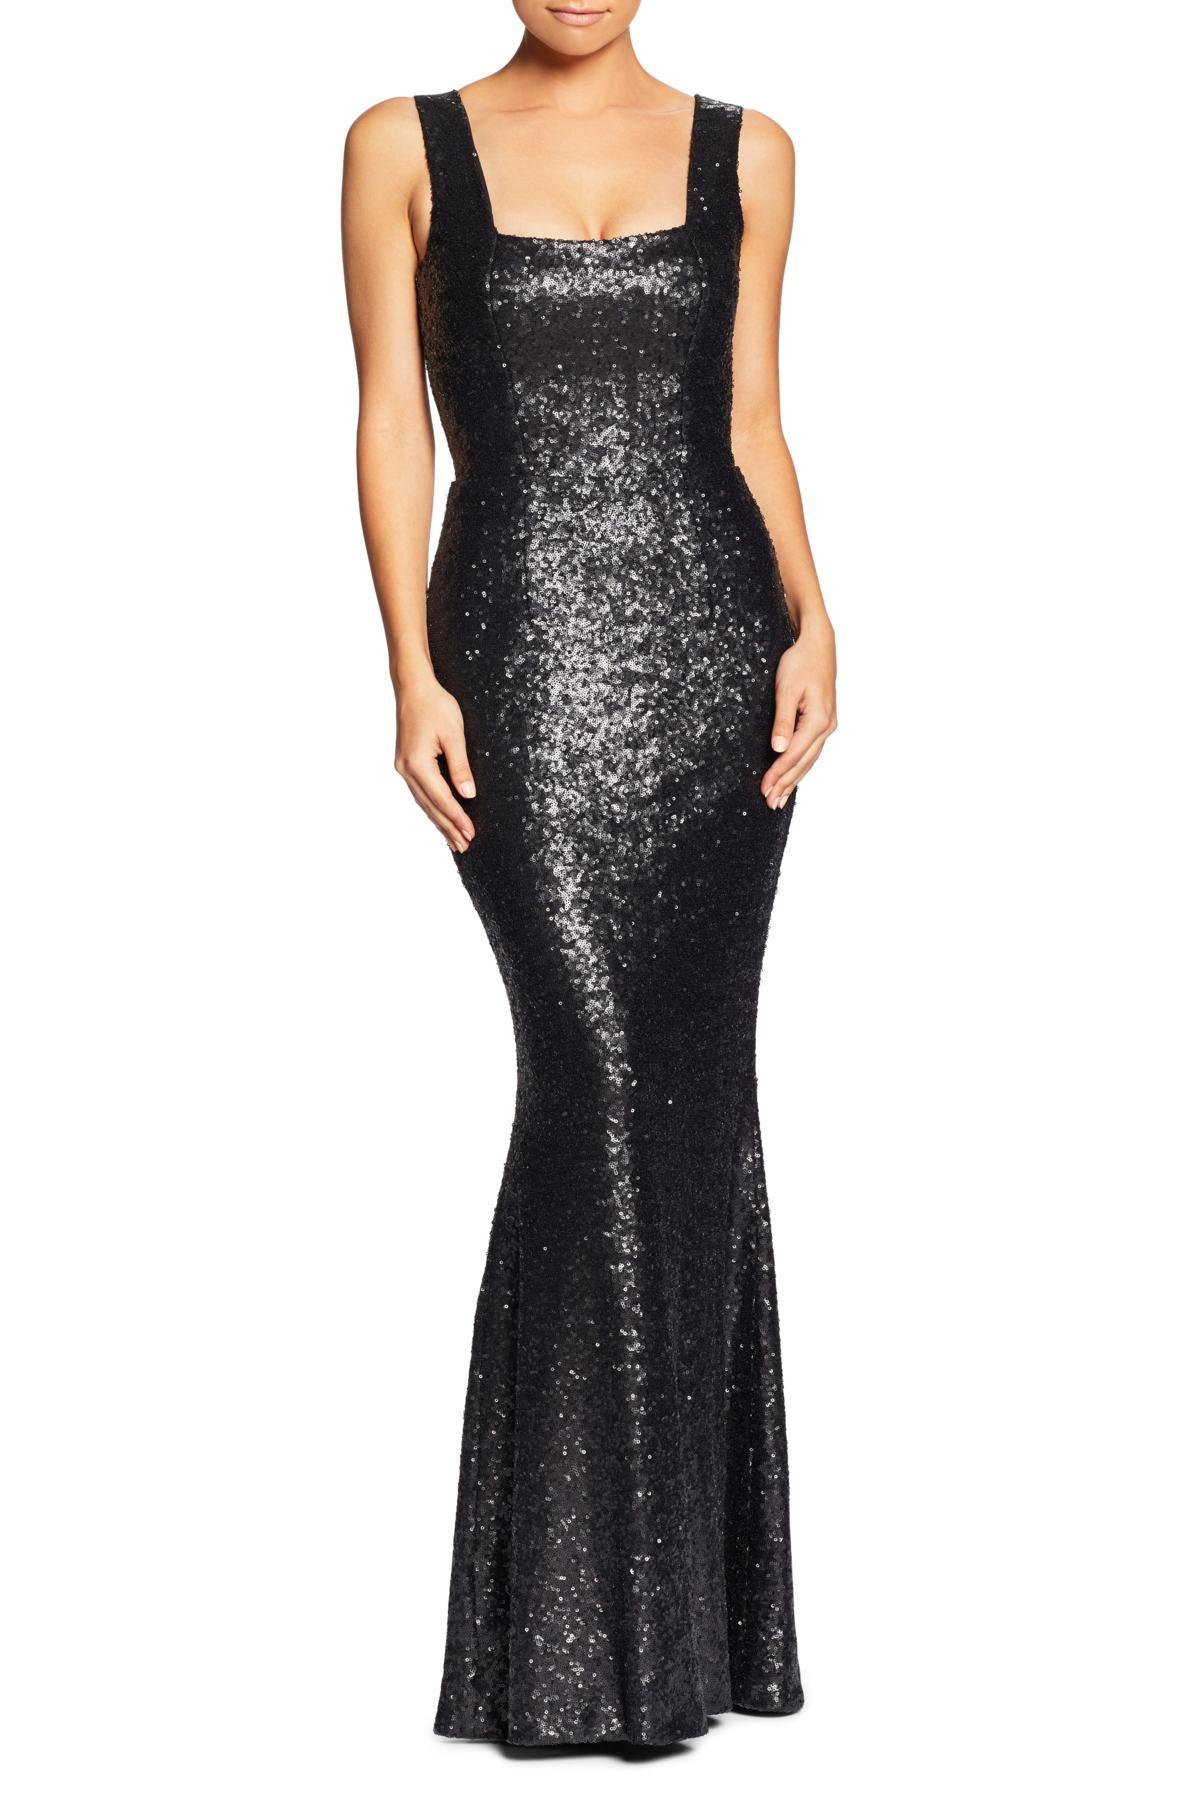 aac0ae4b2be Dress the Population Raven Sequin Gown (nordstrom Exclusive) in ...